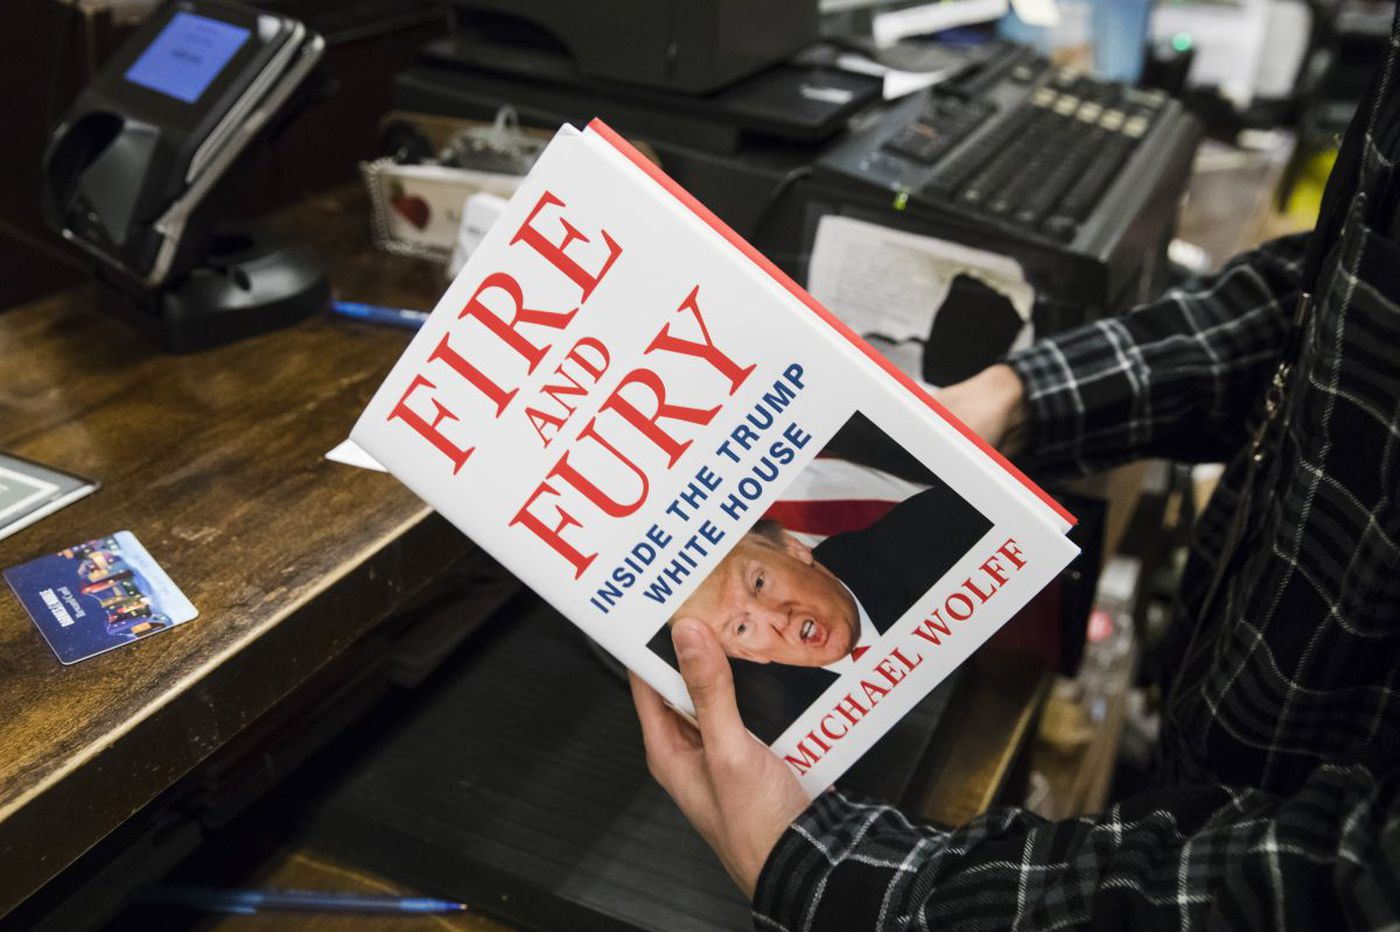 Philly-area bookstores sold out of 'Fire and Fury' Trump book within hours of opening Friday morning